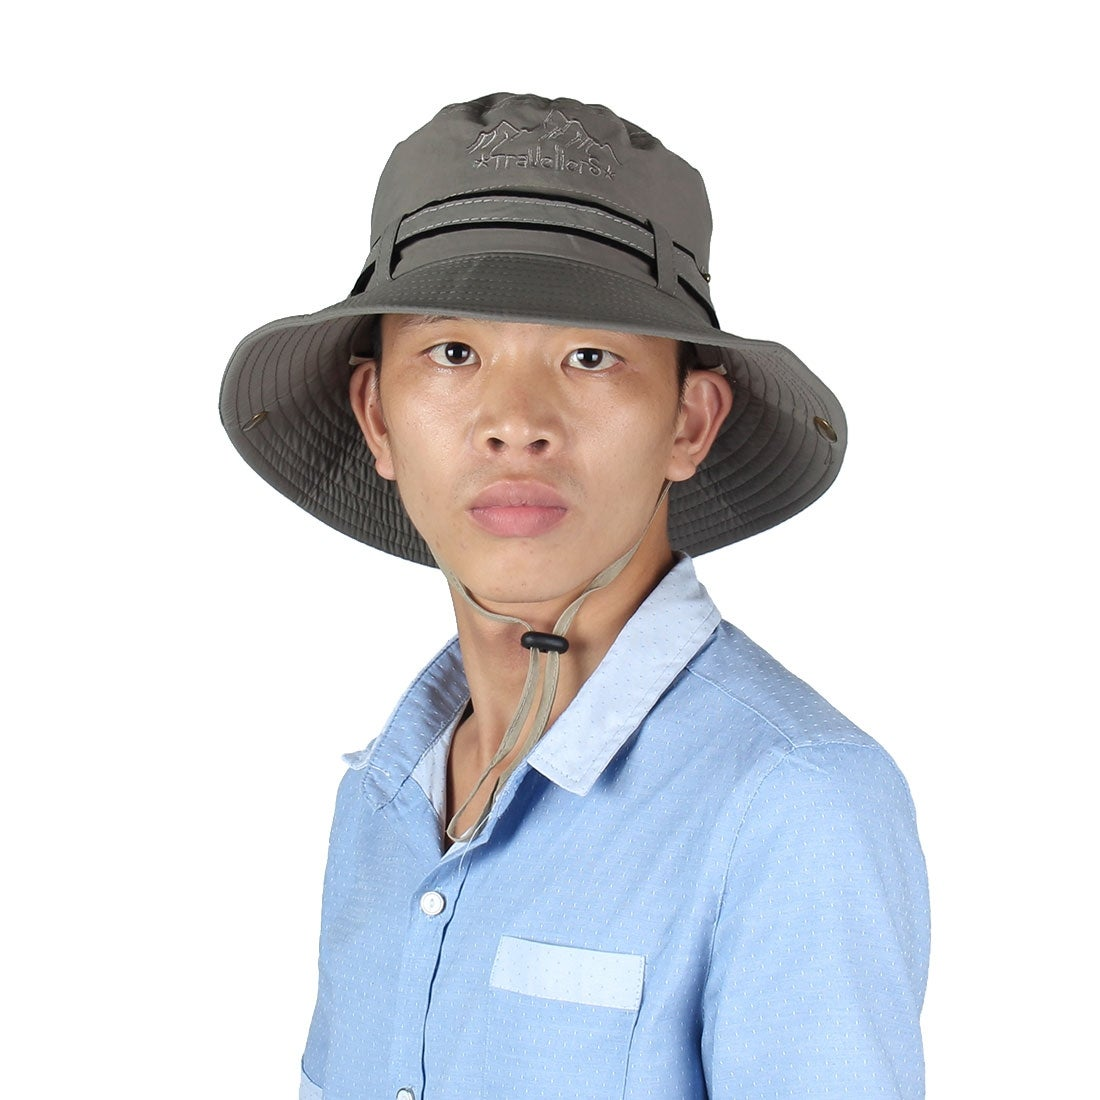 c830840bd2e Shop Fisherman Cotton Blends Sports Wide Brim Bucket Summer Cap Fishing Hat  Dark Gray - On Sale - Free Shipping On Orders Over  45 - Overstock -  18552867